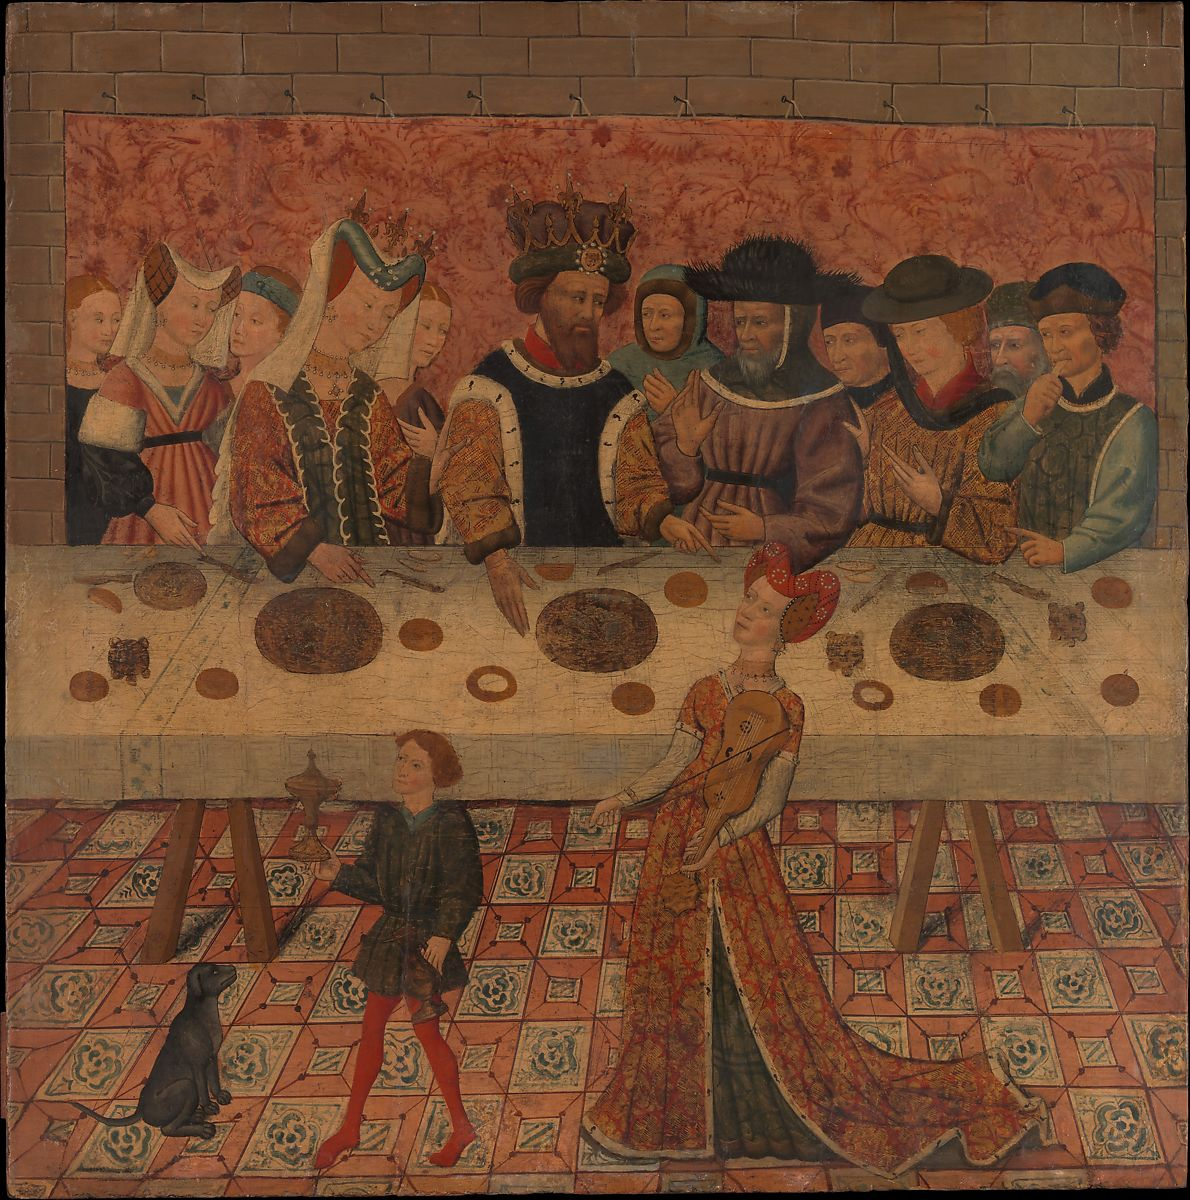 Salome Dancing before Herod, Spanish (Catalan) Painter (mid-15th century), Tempera and gold on wood